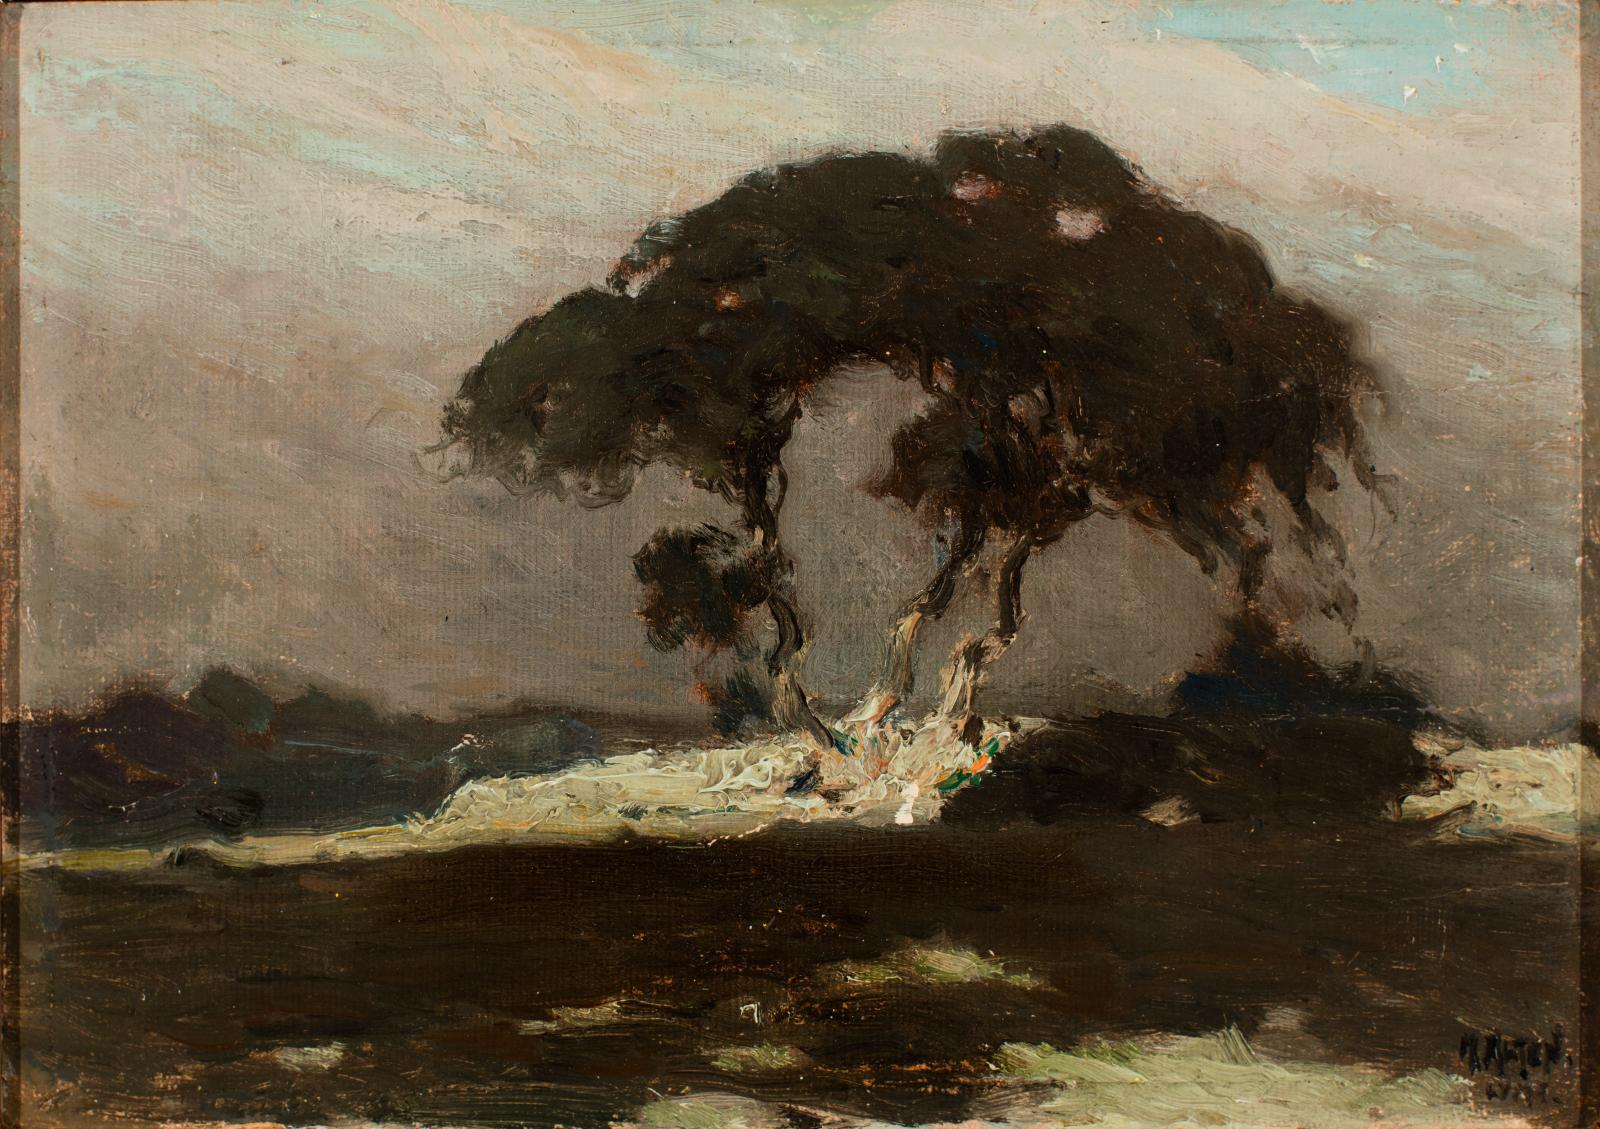 Dark image of a large tree, mostly dark greens and greys.